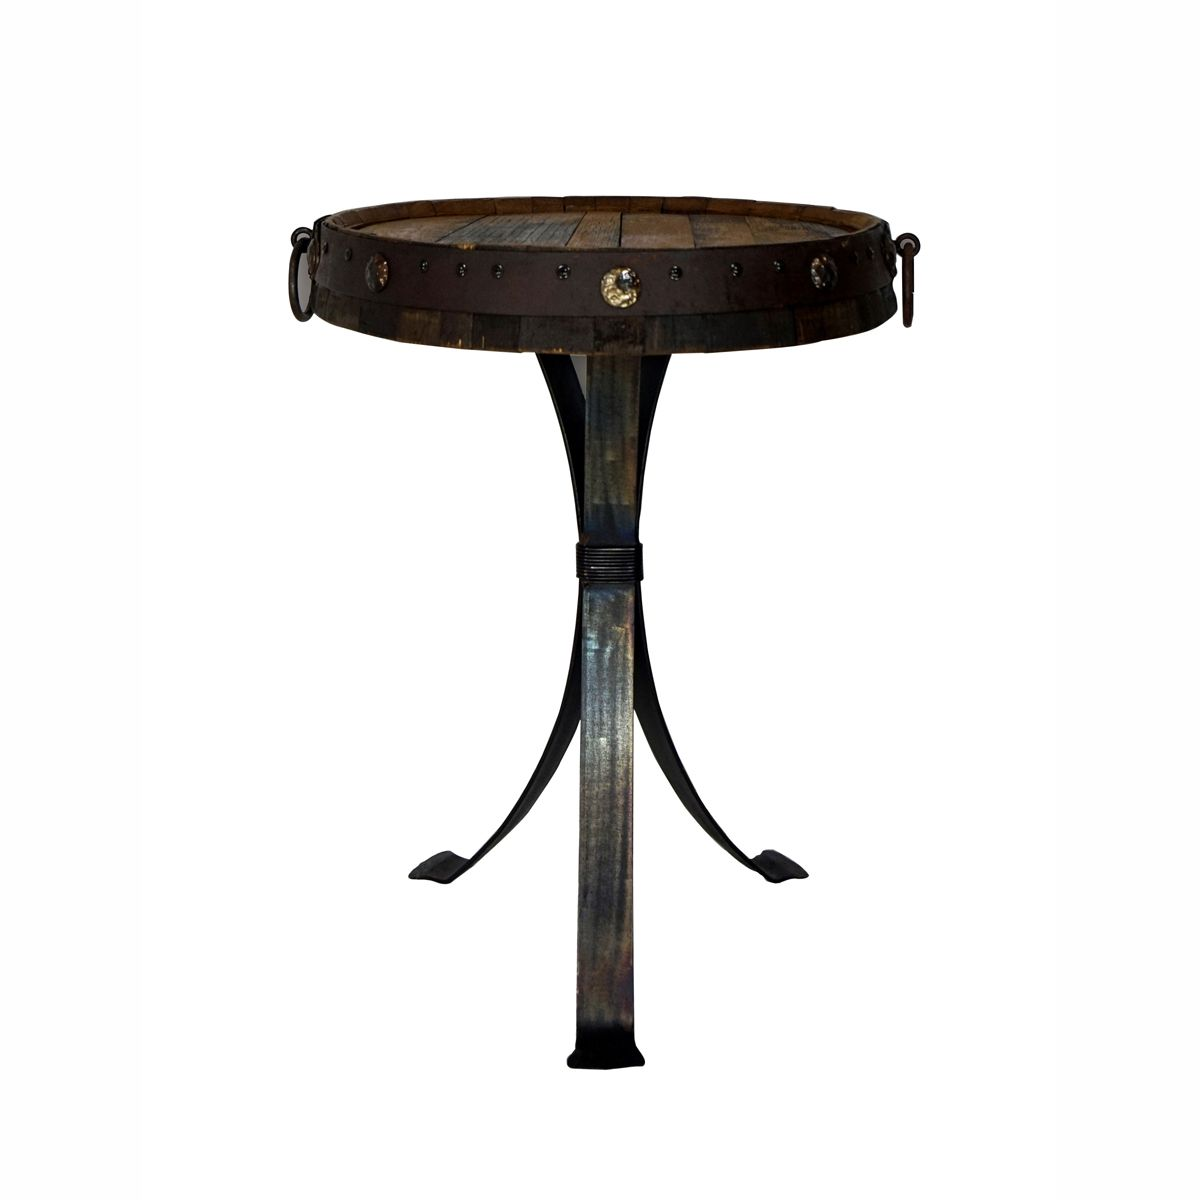 Tequila Barrel Top Table with Modern Natural Iron Base